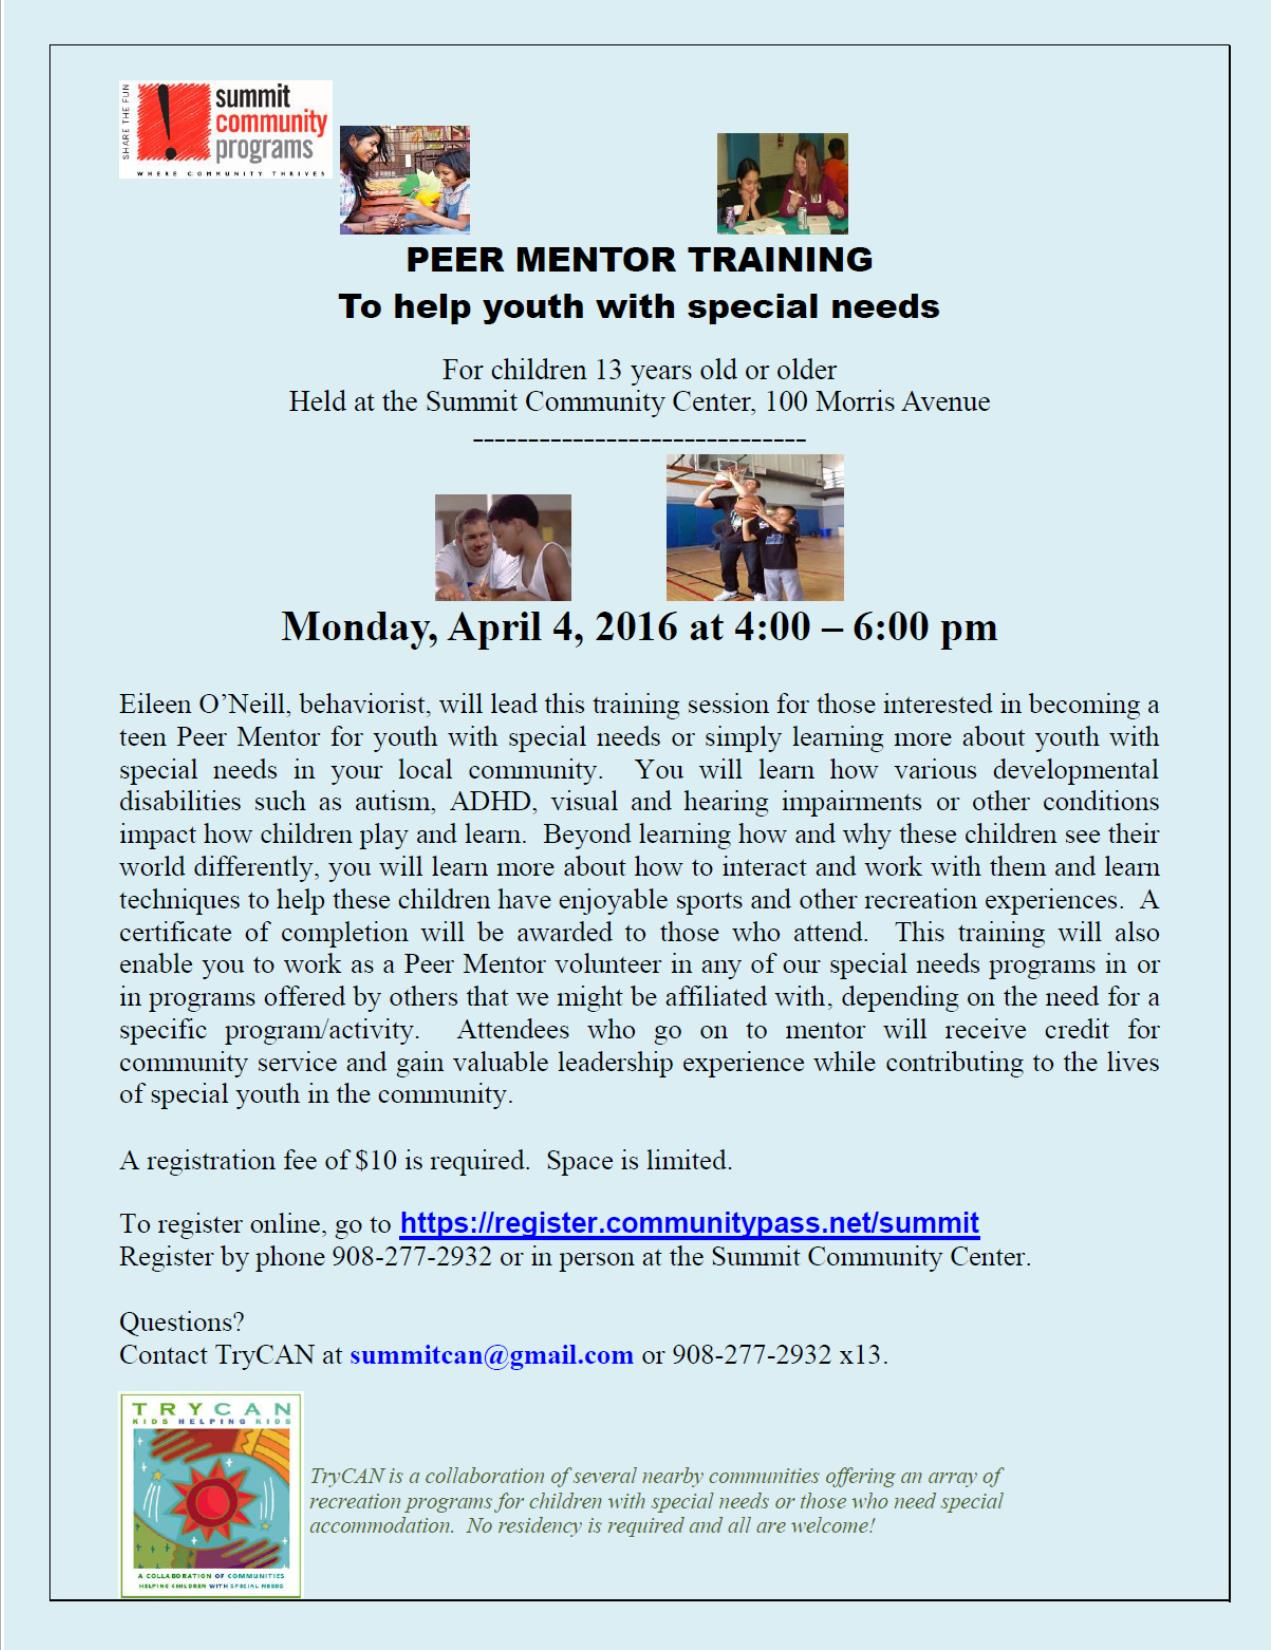 f90e3cda8c98e2a97c65_mentor_training_flyer_April_2016.jpg